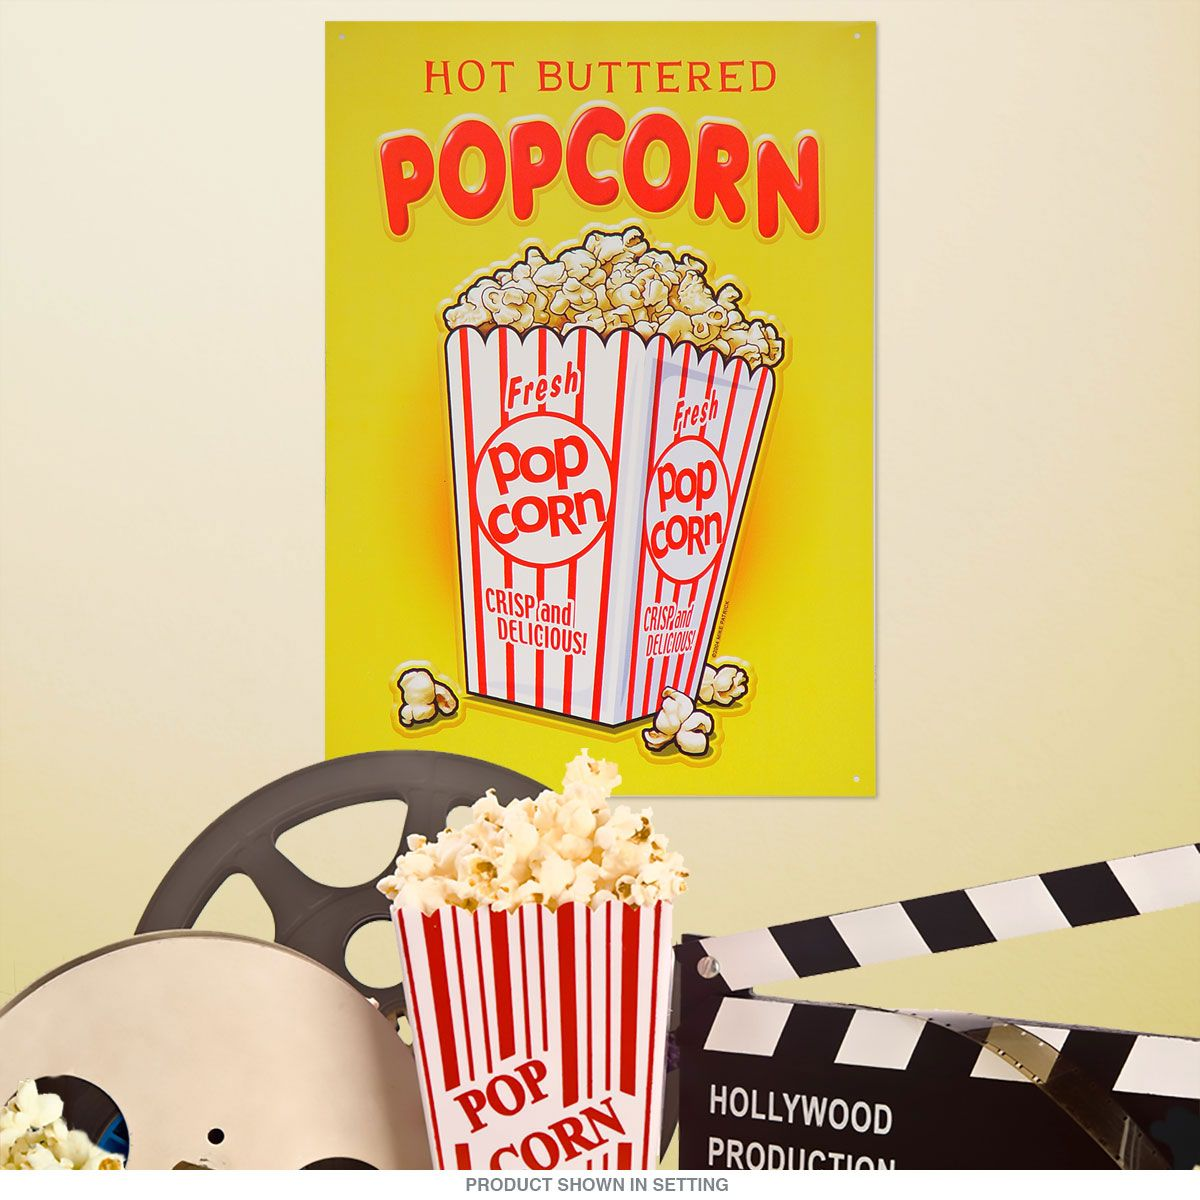 Theater Room Snack Bar: Hot Buttered Popcorn Snack Bar Metal Sign